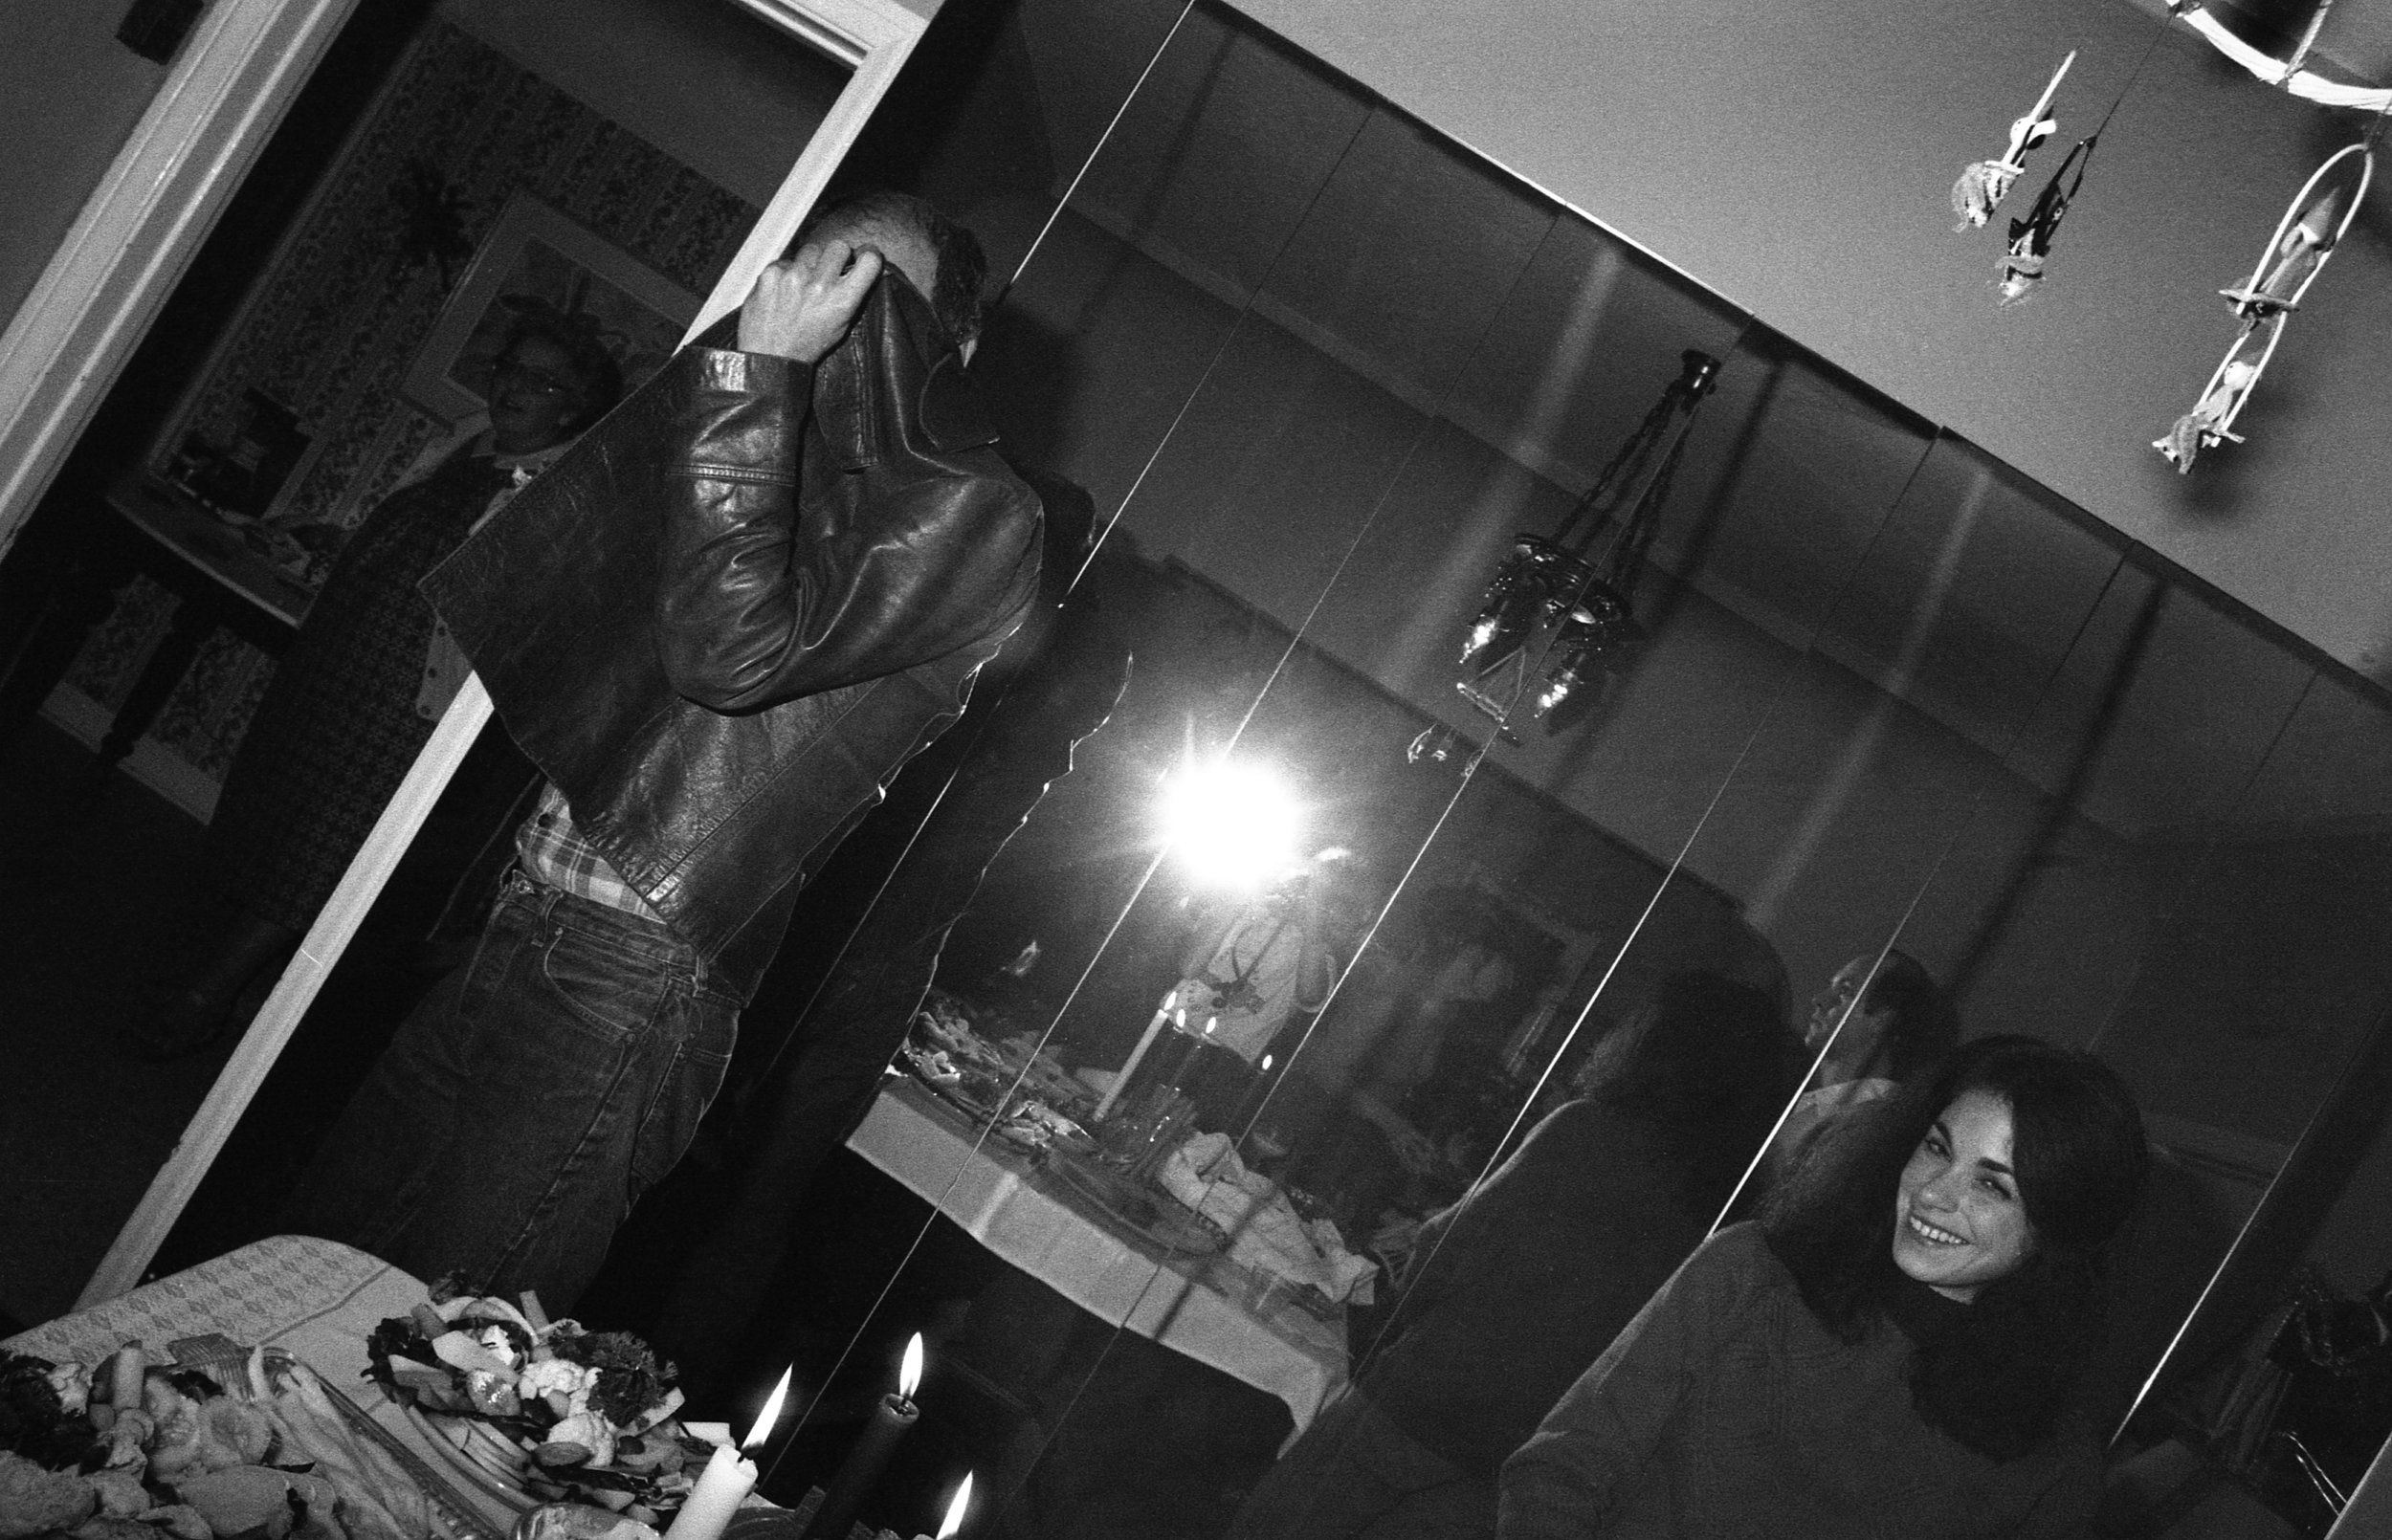 Los Angeles, December, 1981. Left to right: Sophie Youdelman, Randall Mason, Douglas Oliver (reflected in mirror), unknown woman.